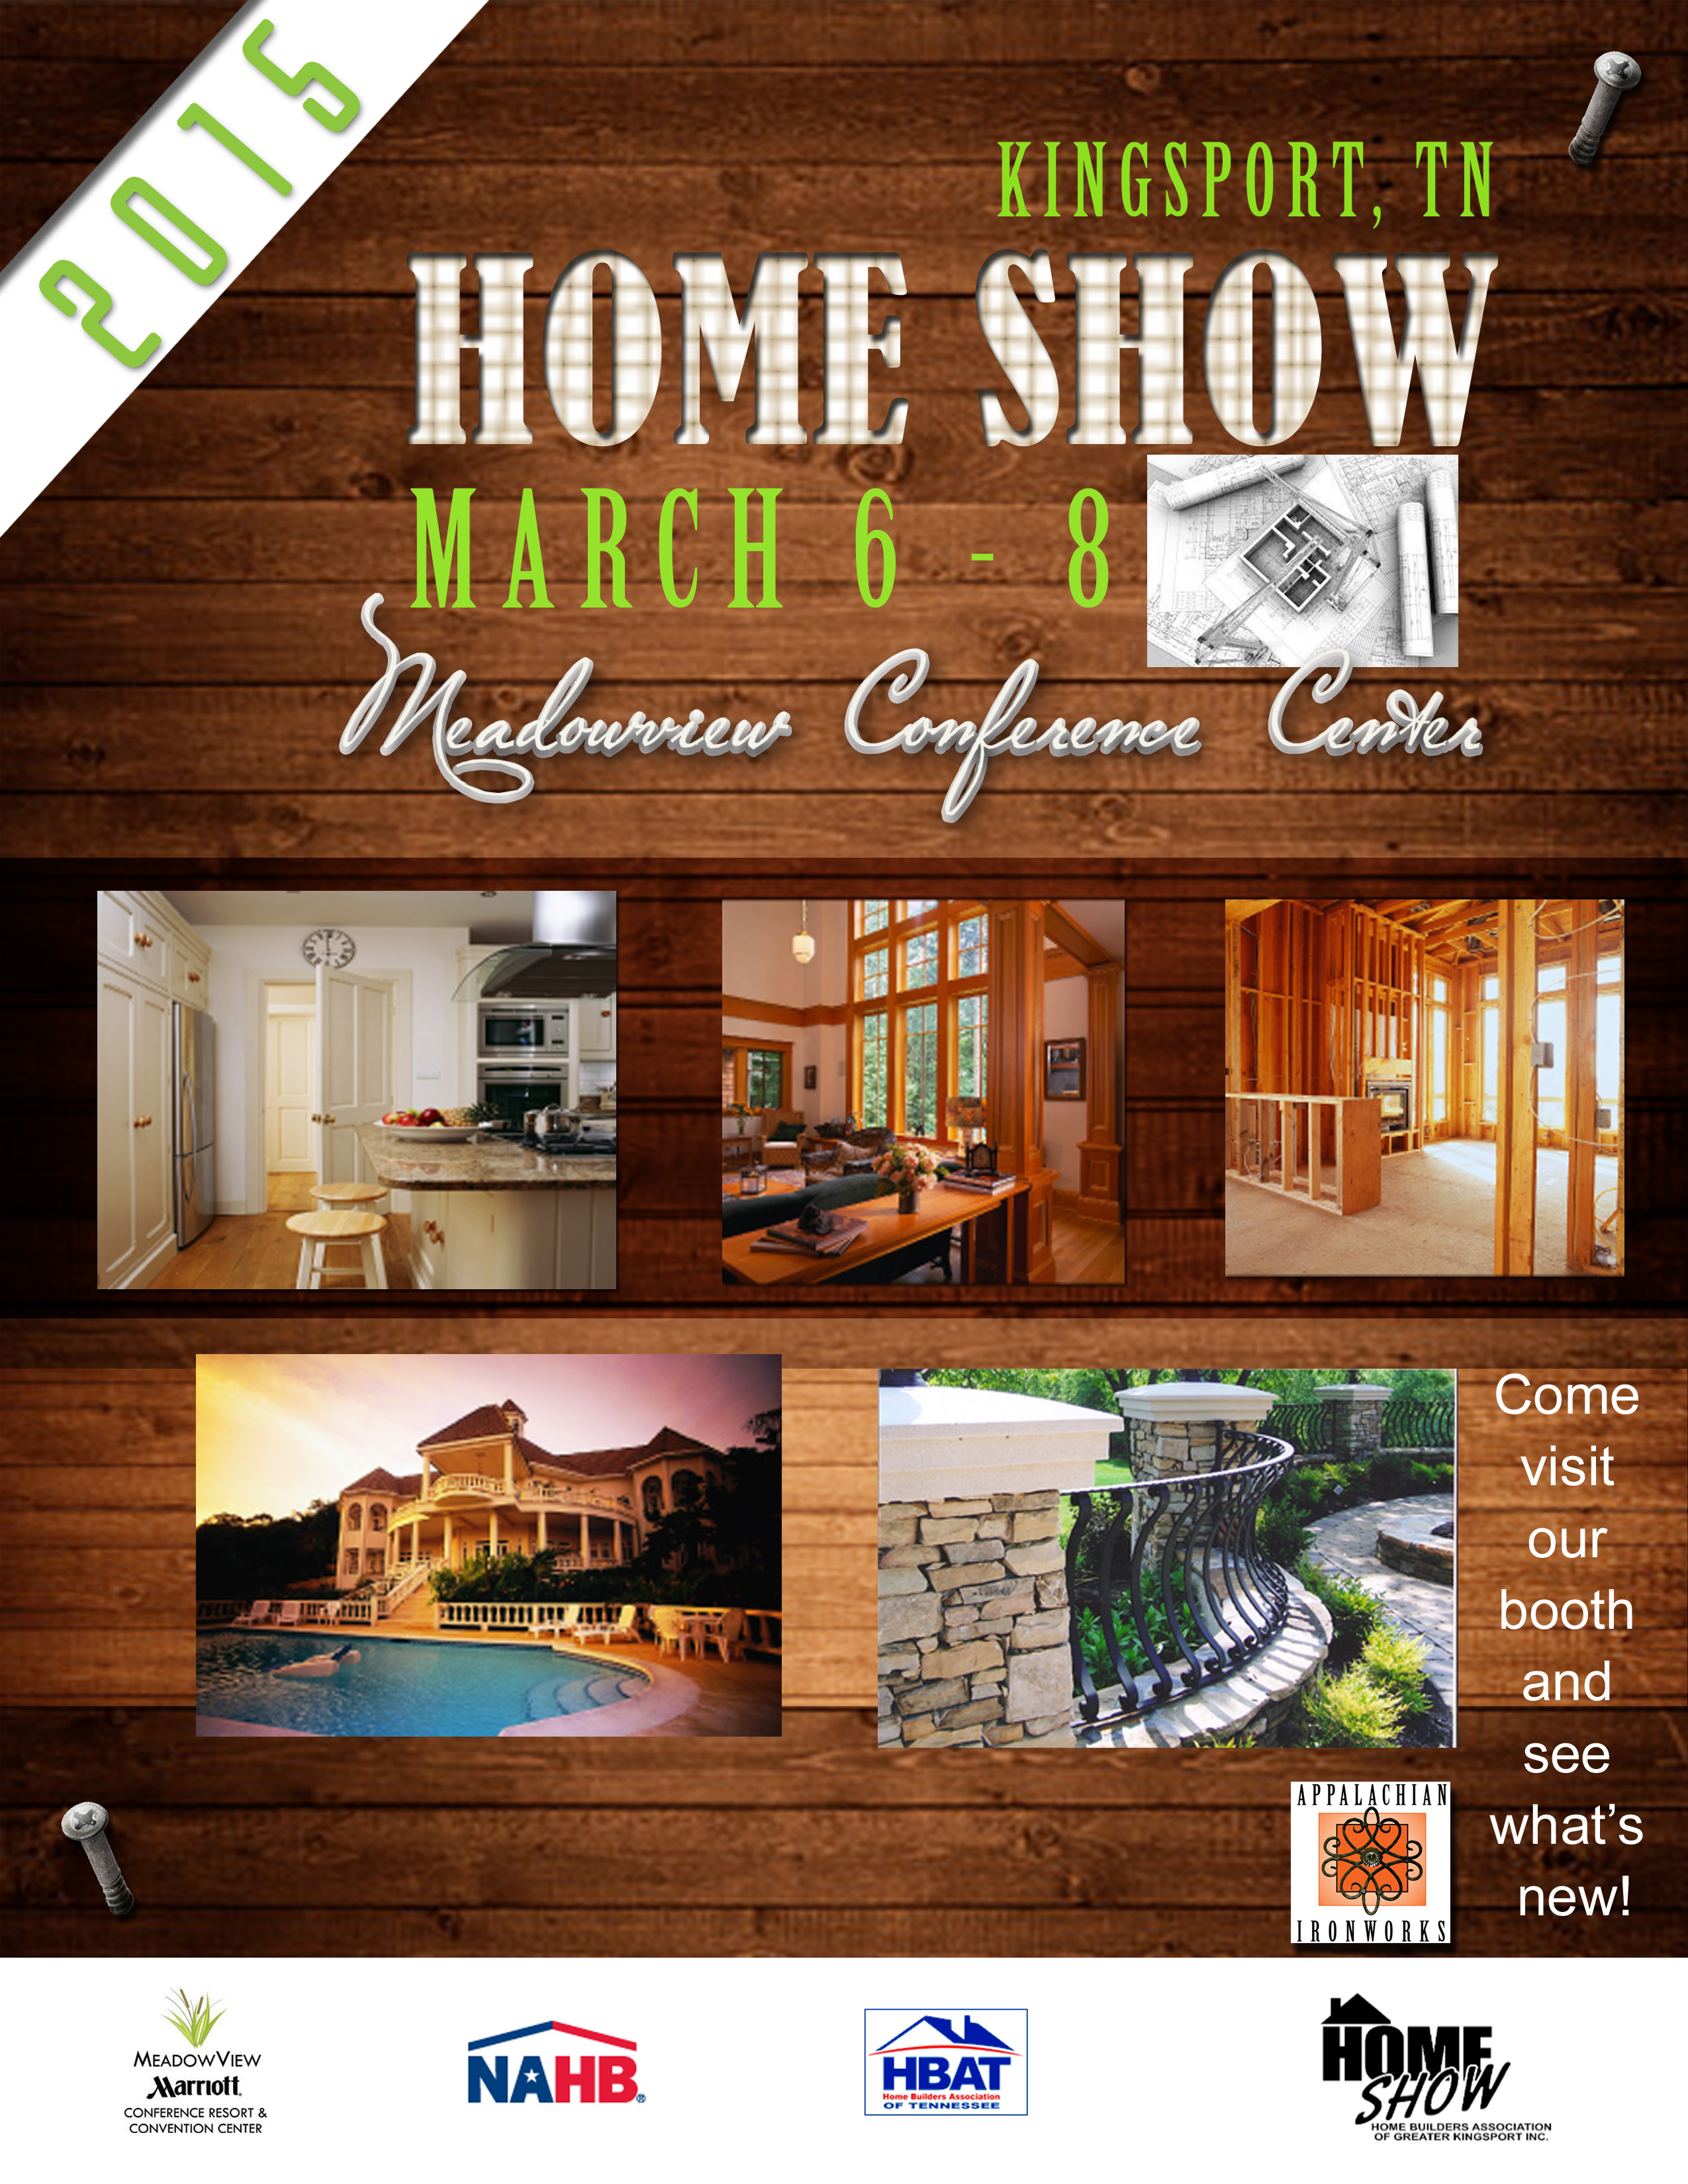 The 2015 Kingsport Homeshow